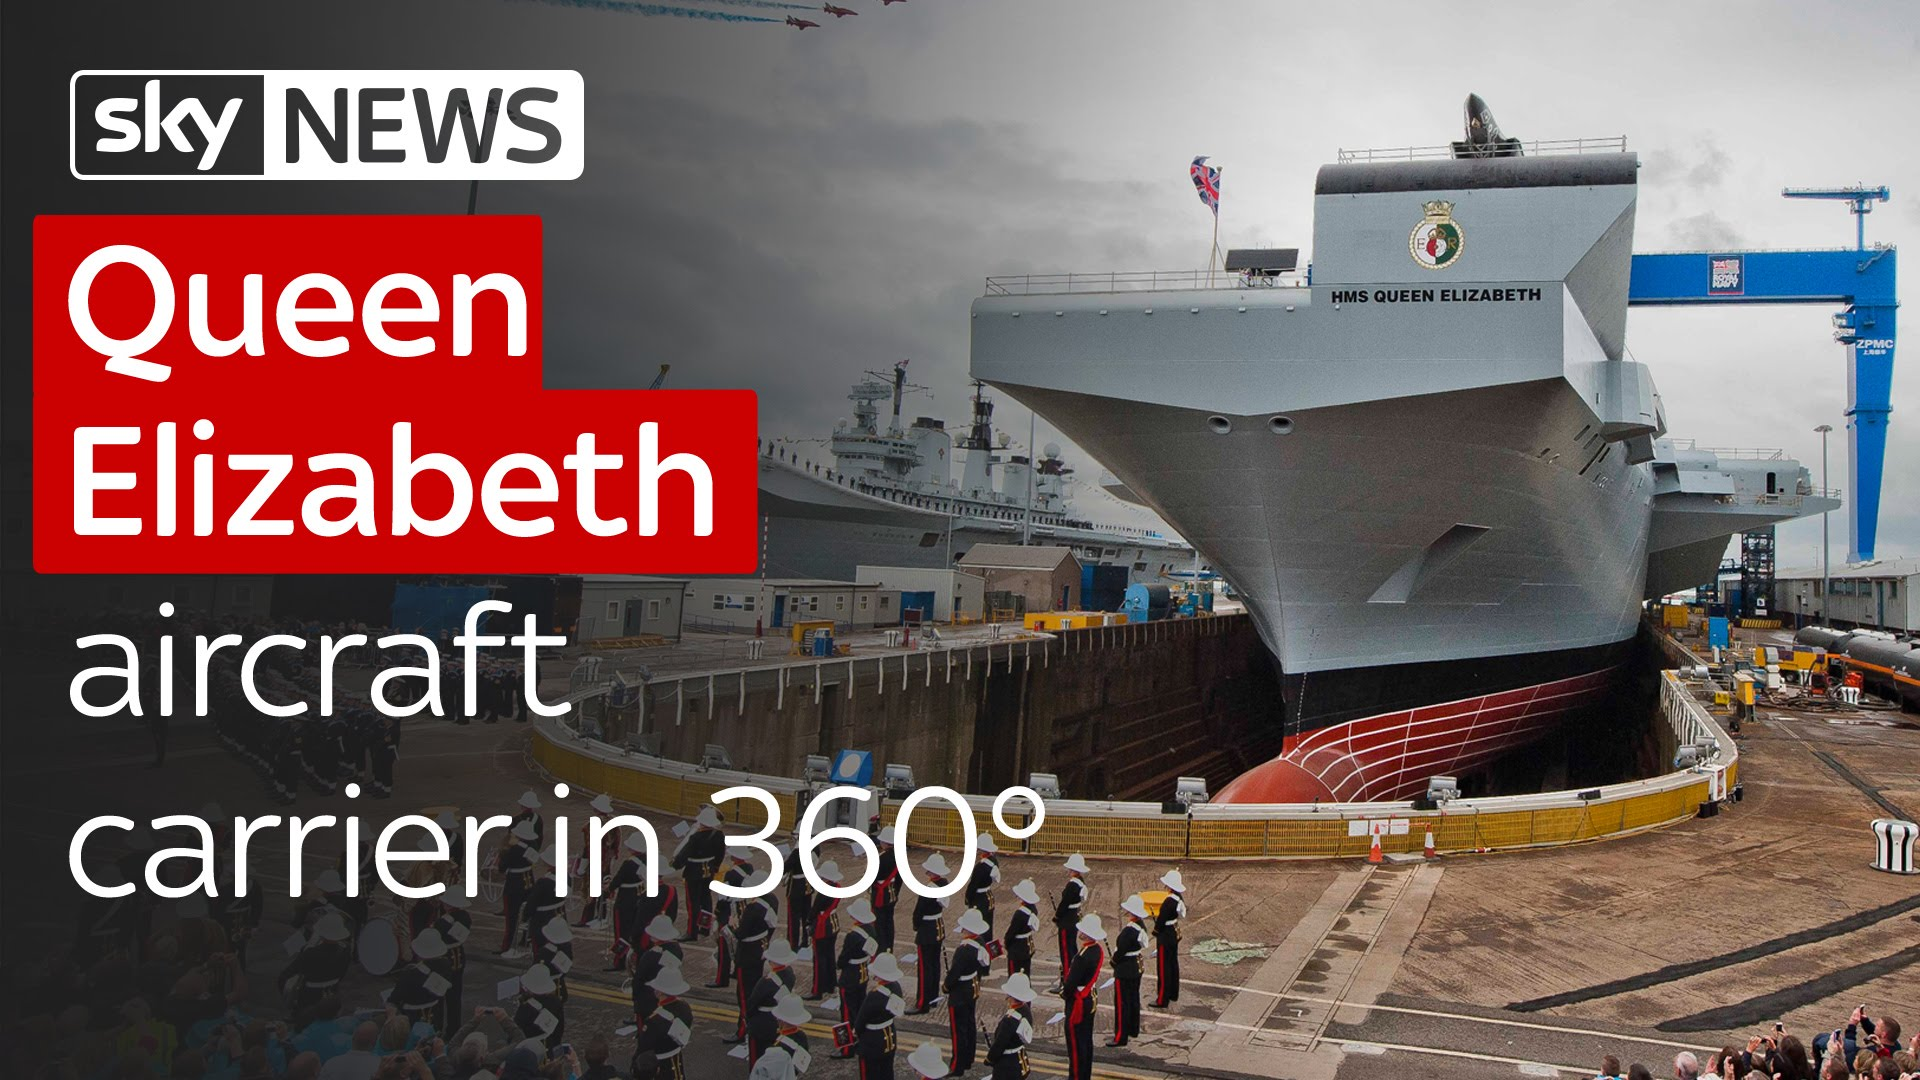 Queen Elizabeth aircraft carrier in 360° 9